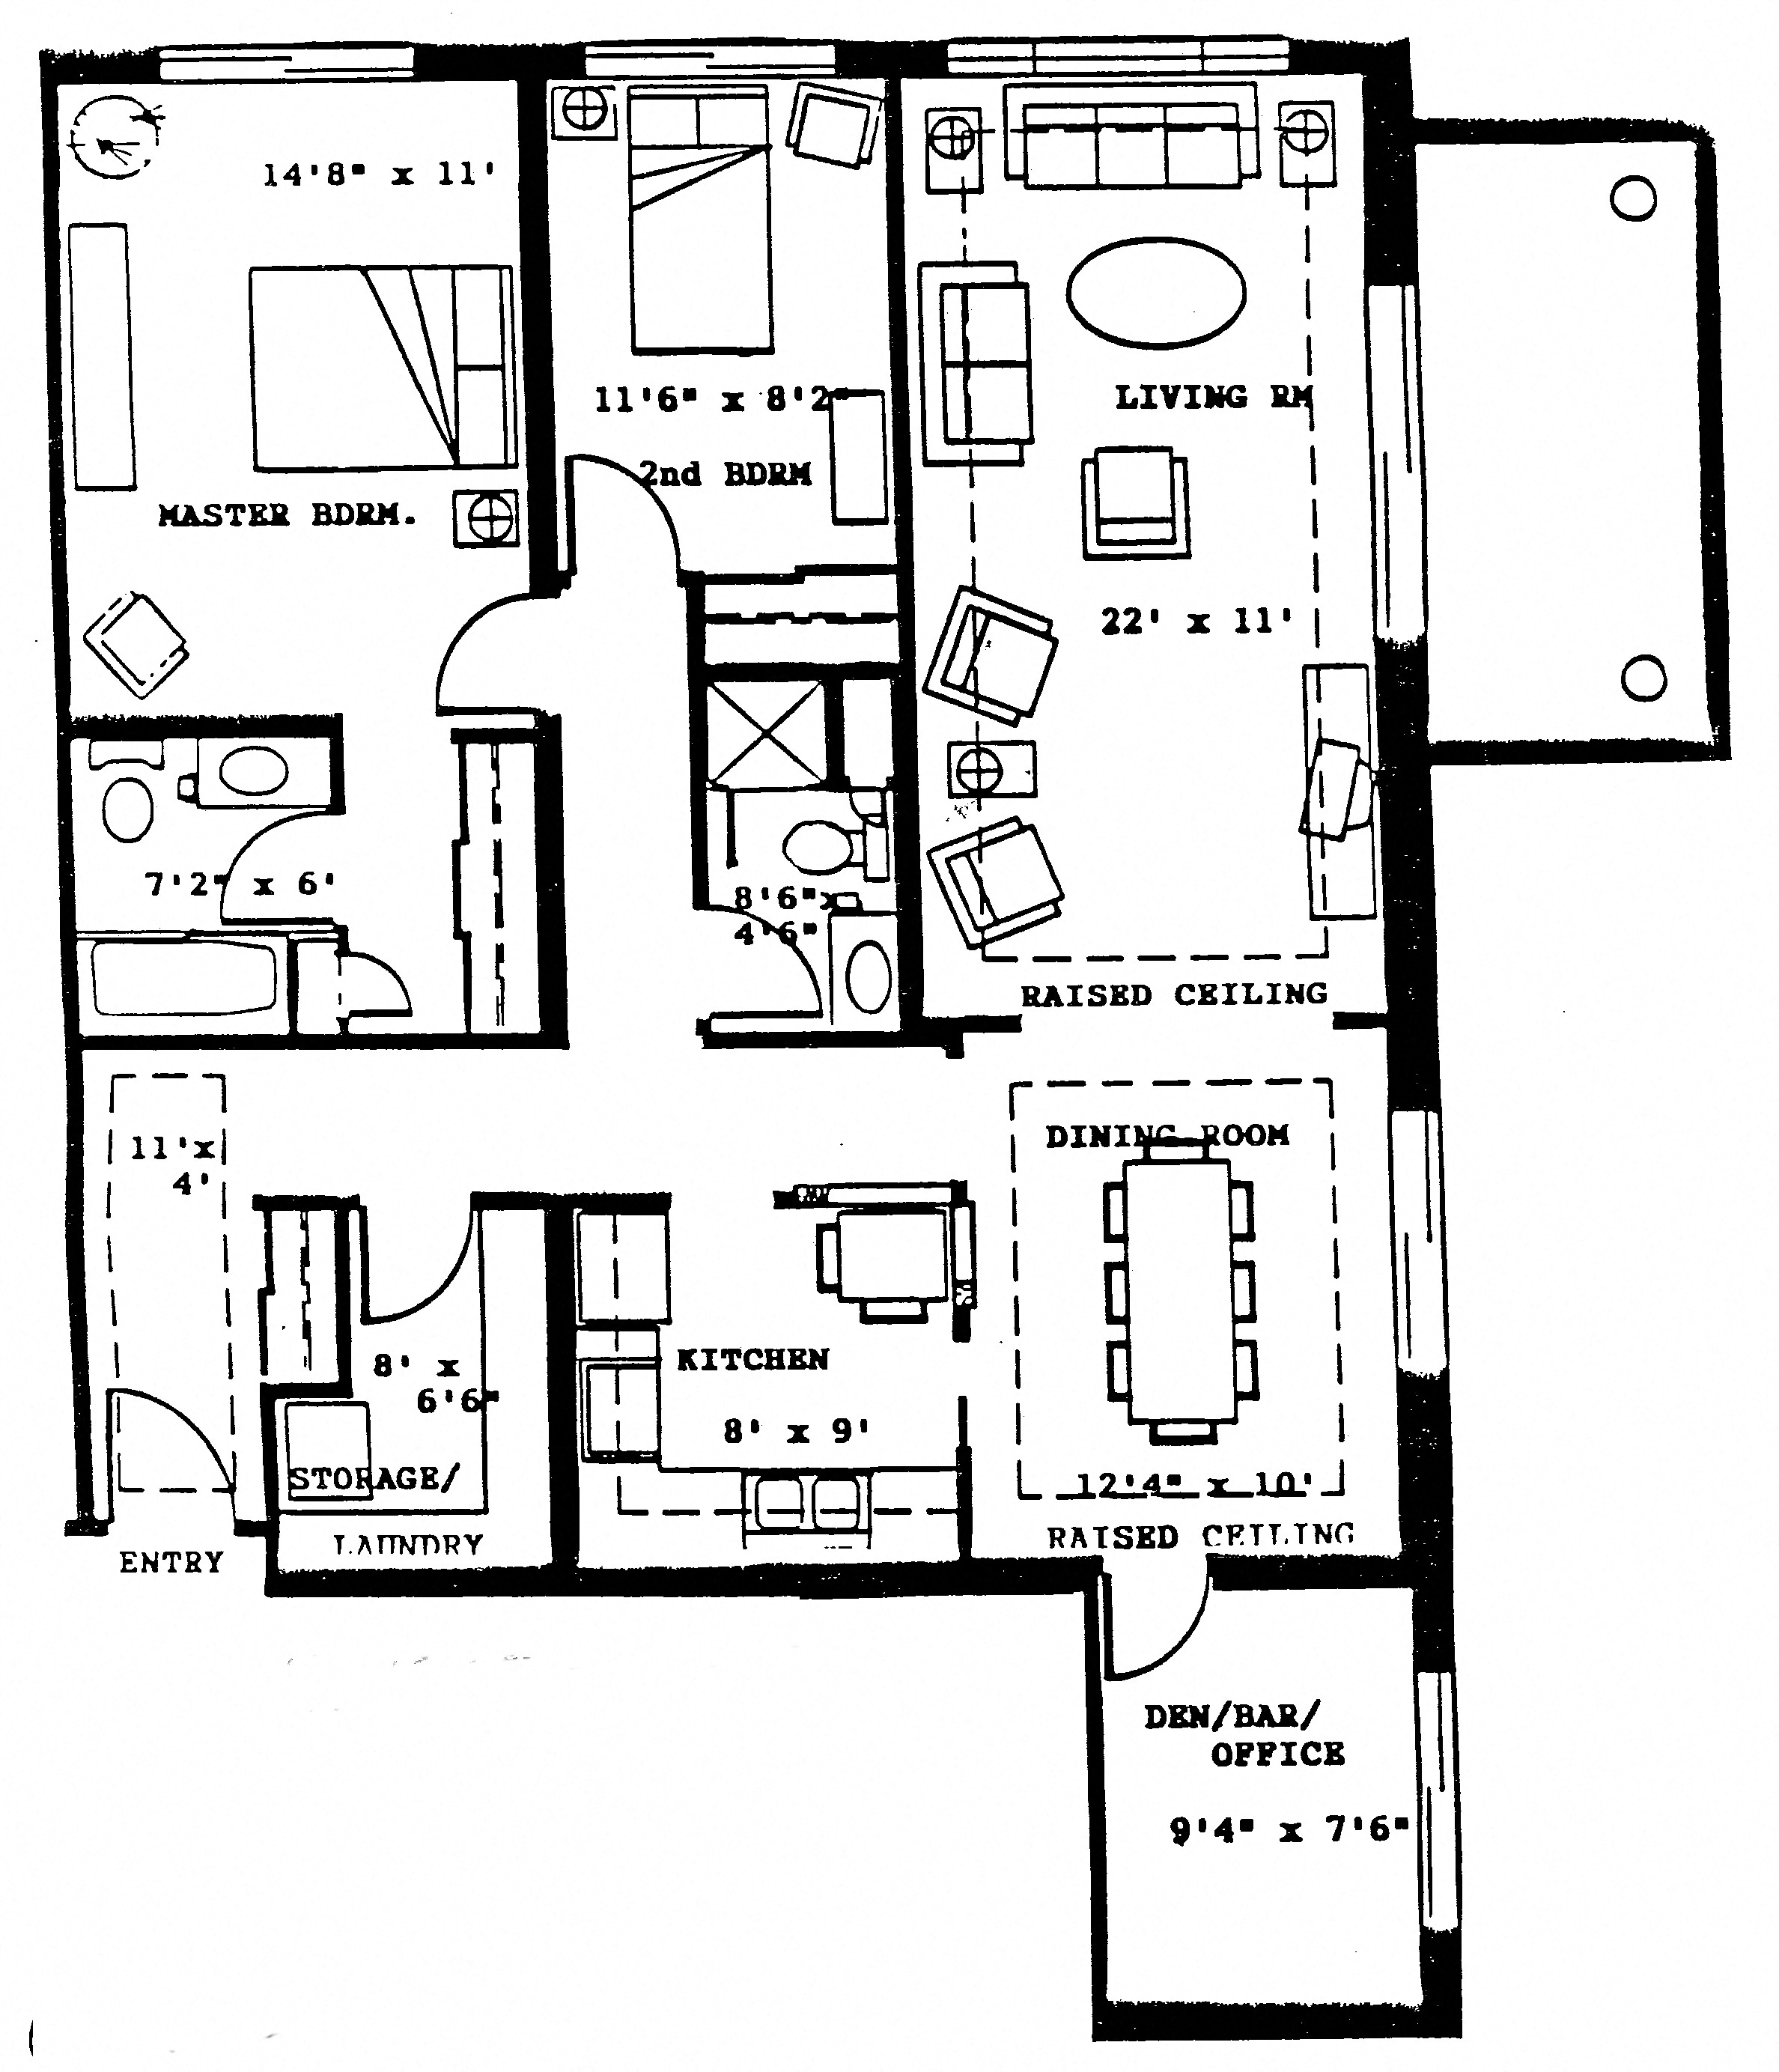 floor plans of river plaza apartments in eau claire wi